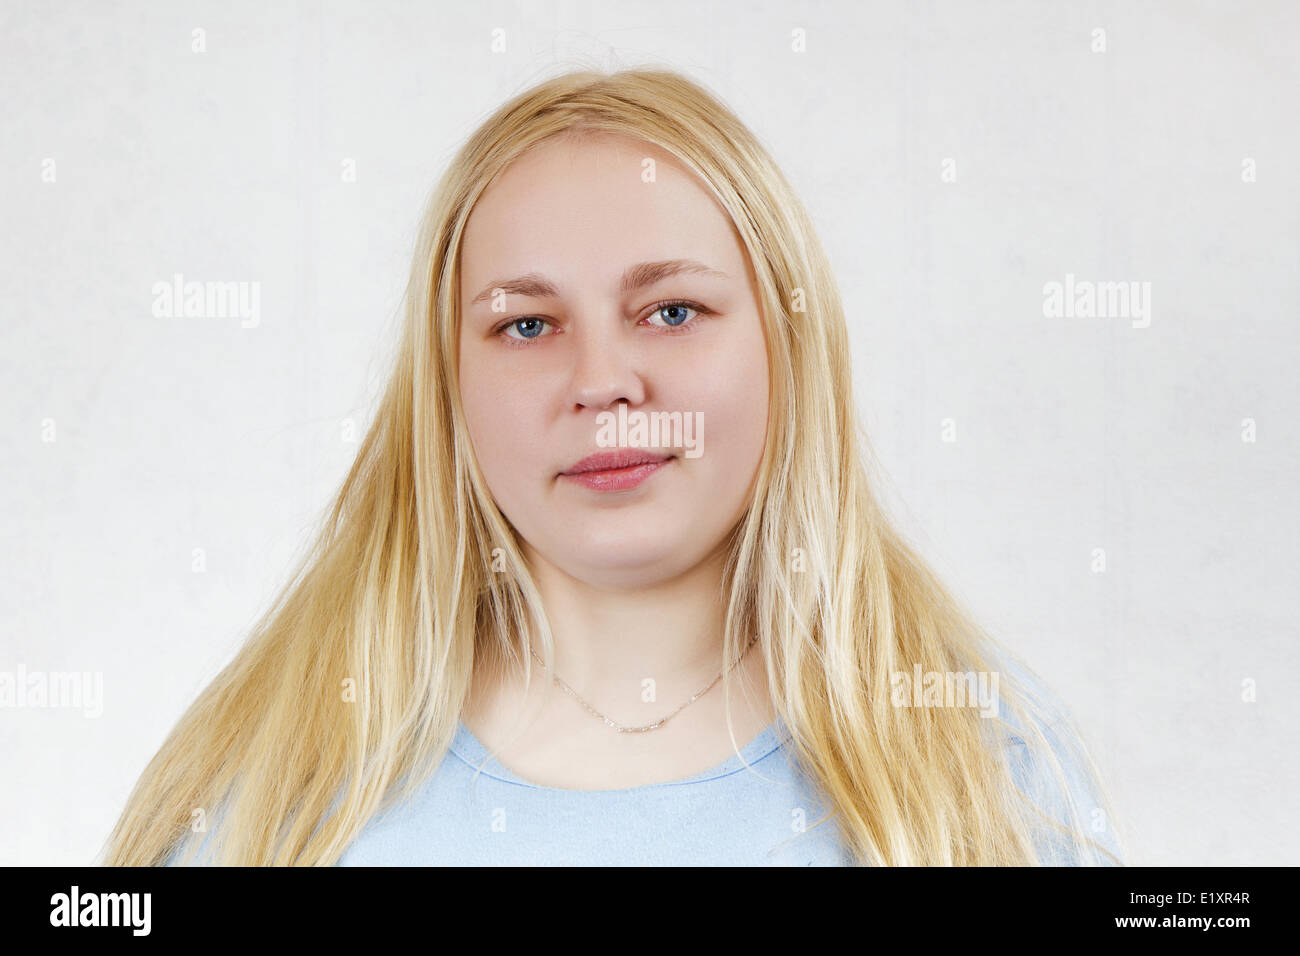 chubby blonde girl - Stock Image